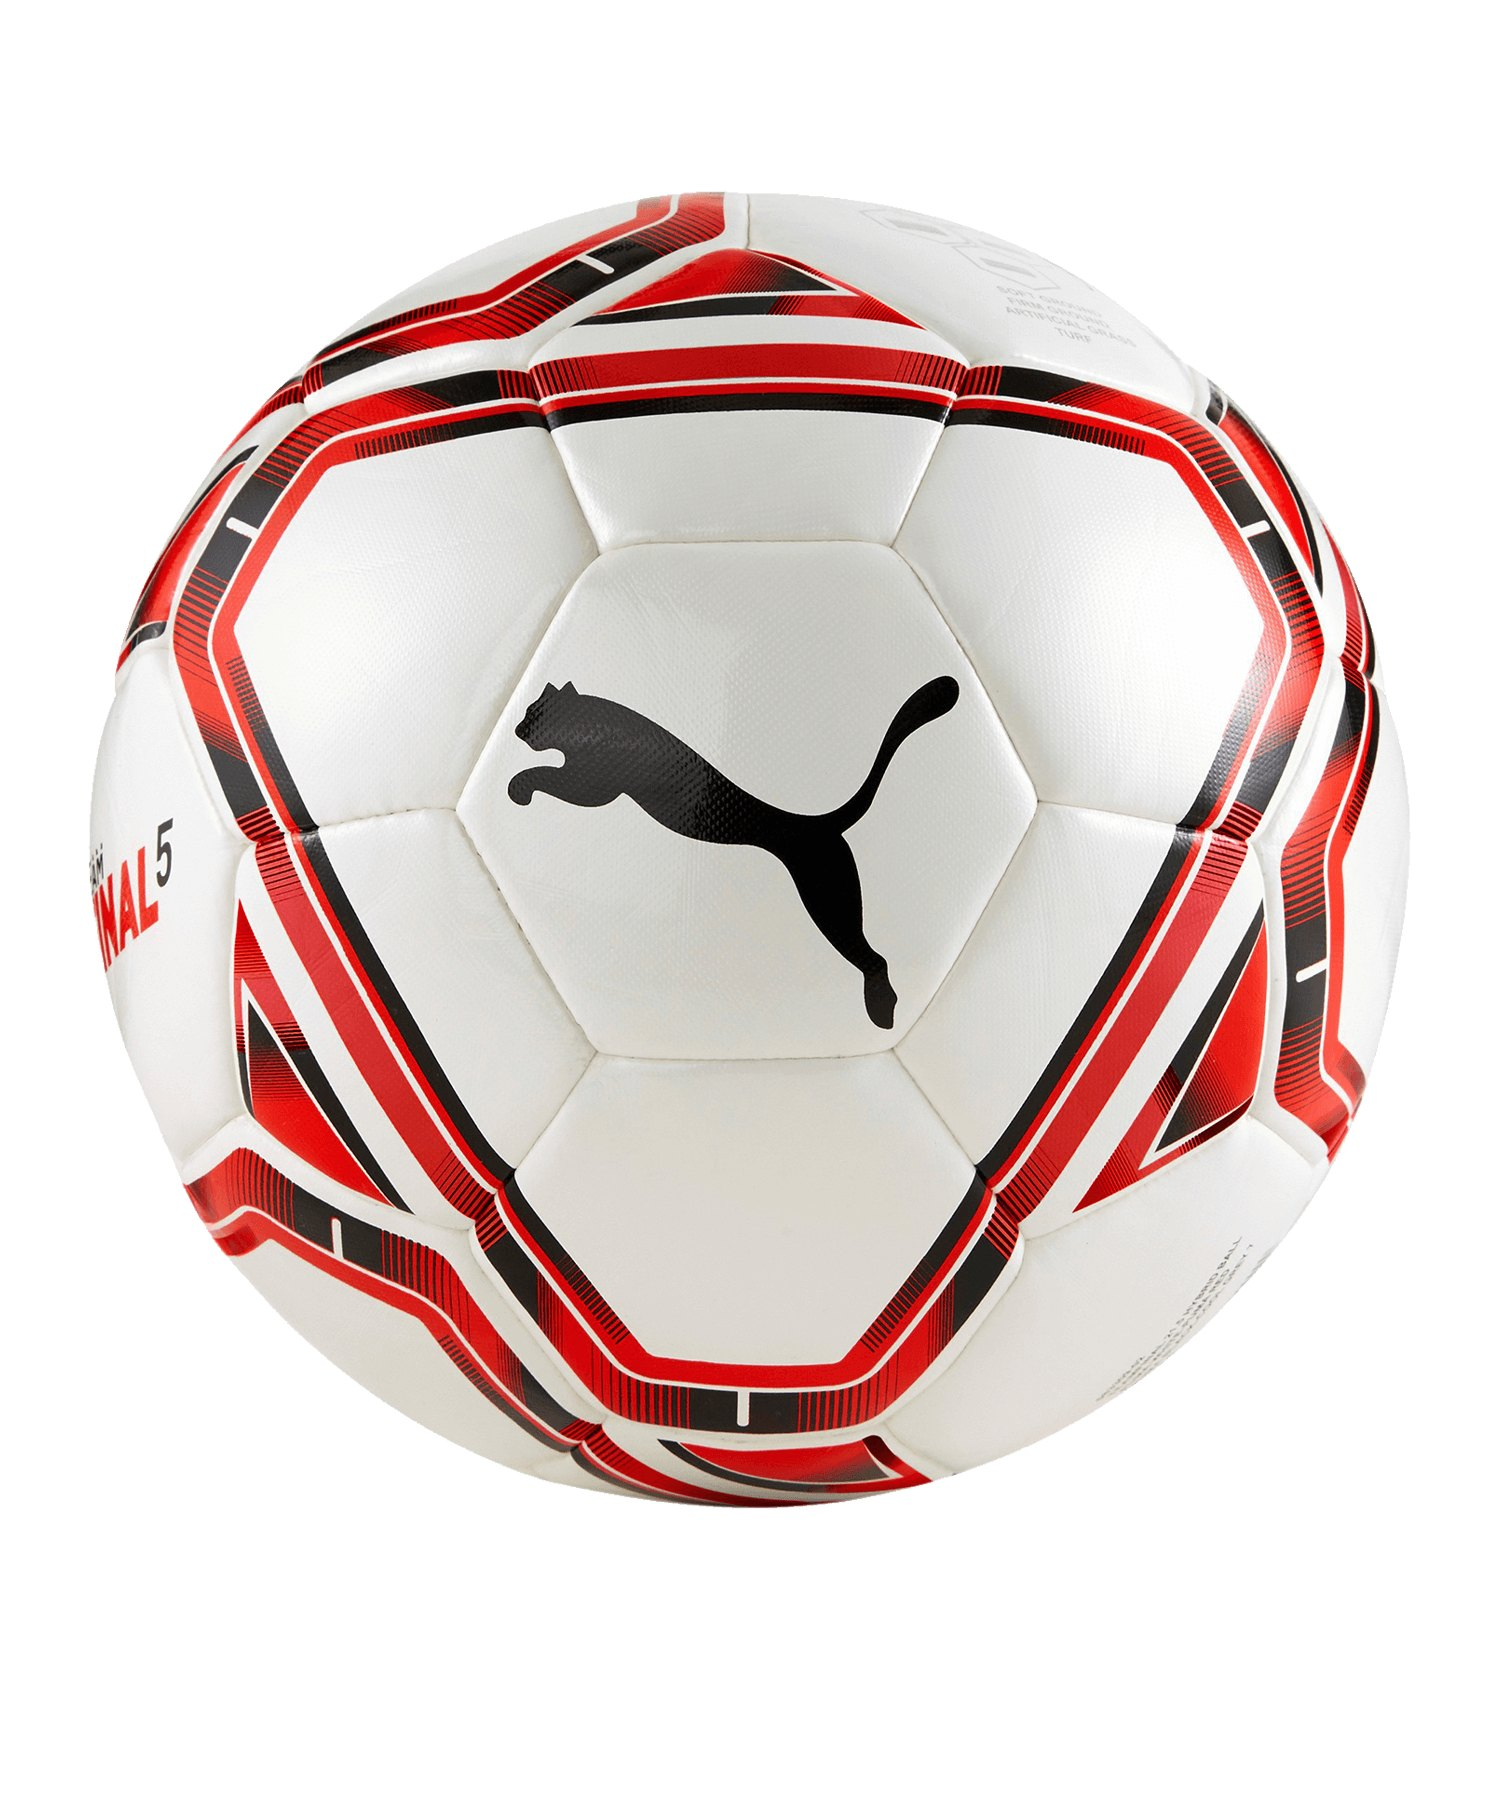 PUMA teamFINAL 21.5. Trainingsball F02 - weiss